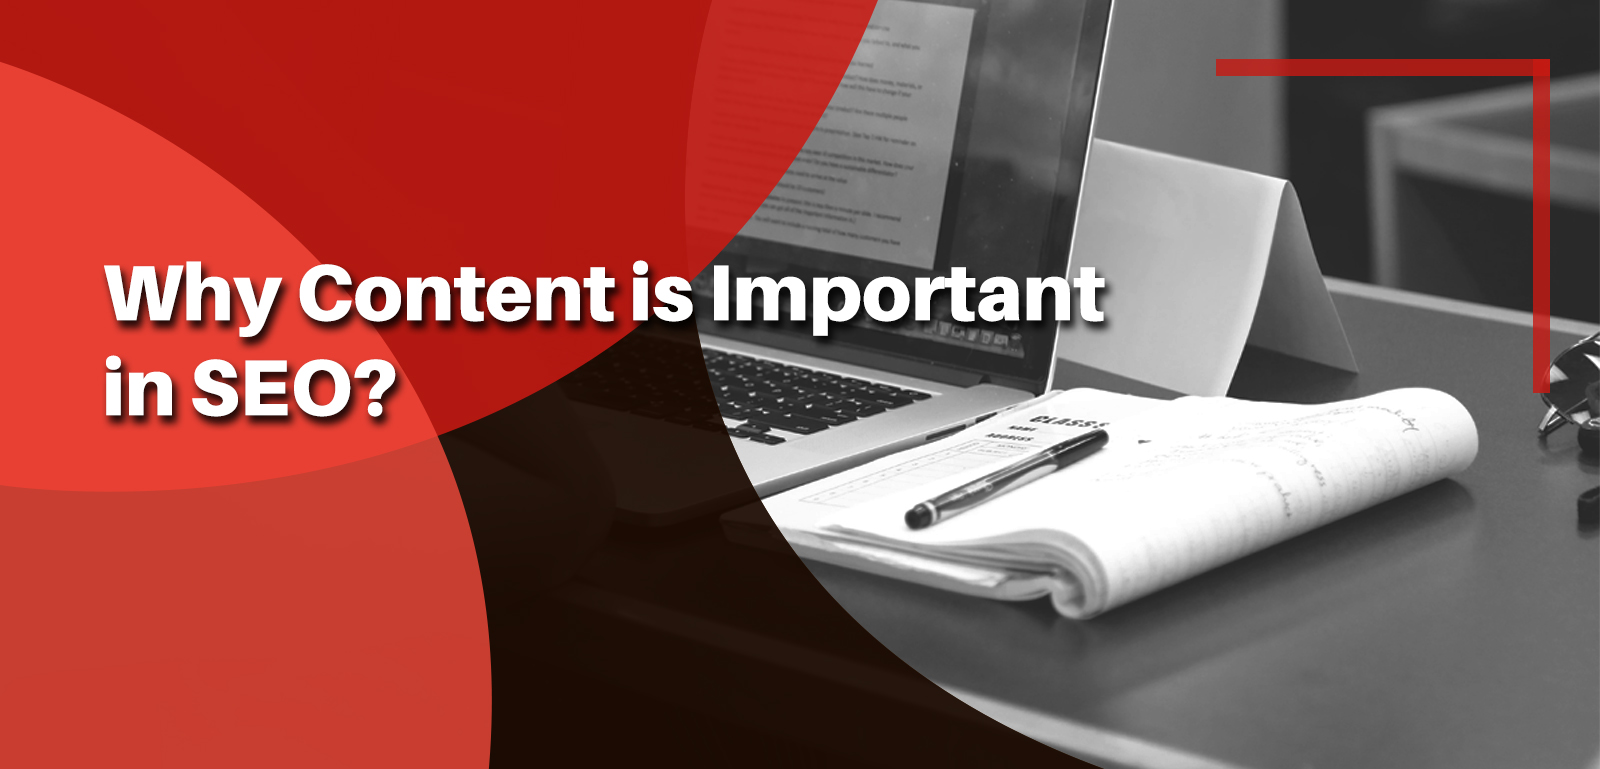 Why content is important in SEO